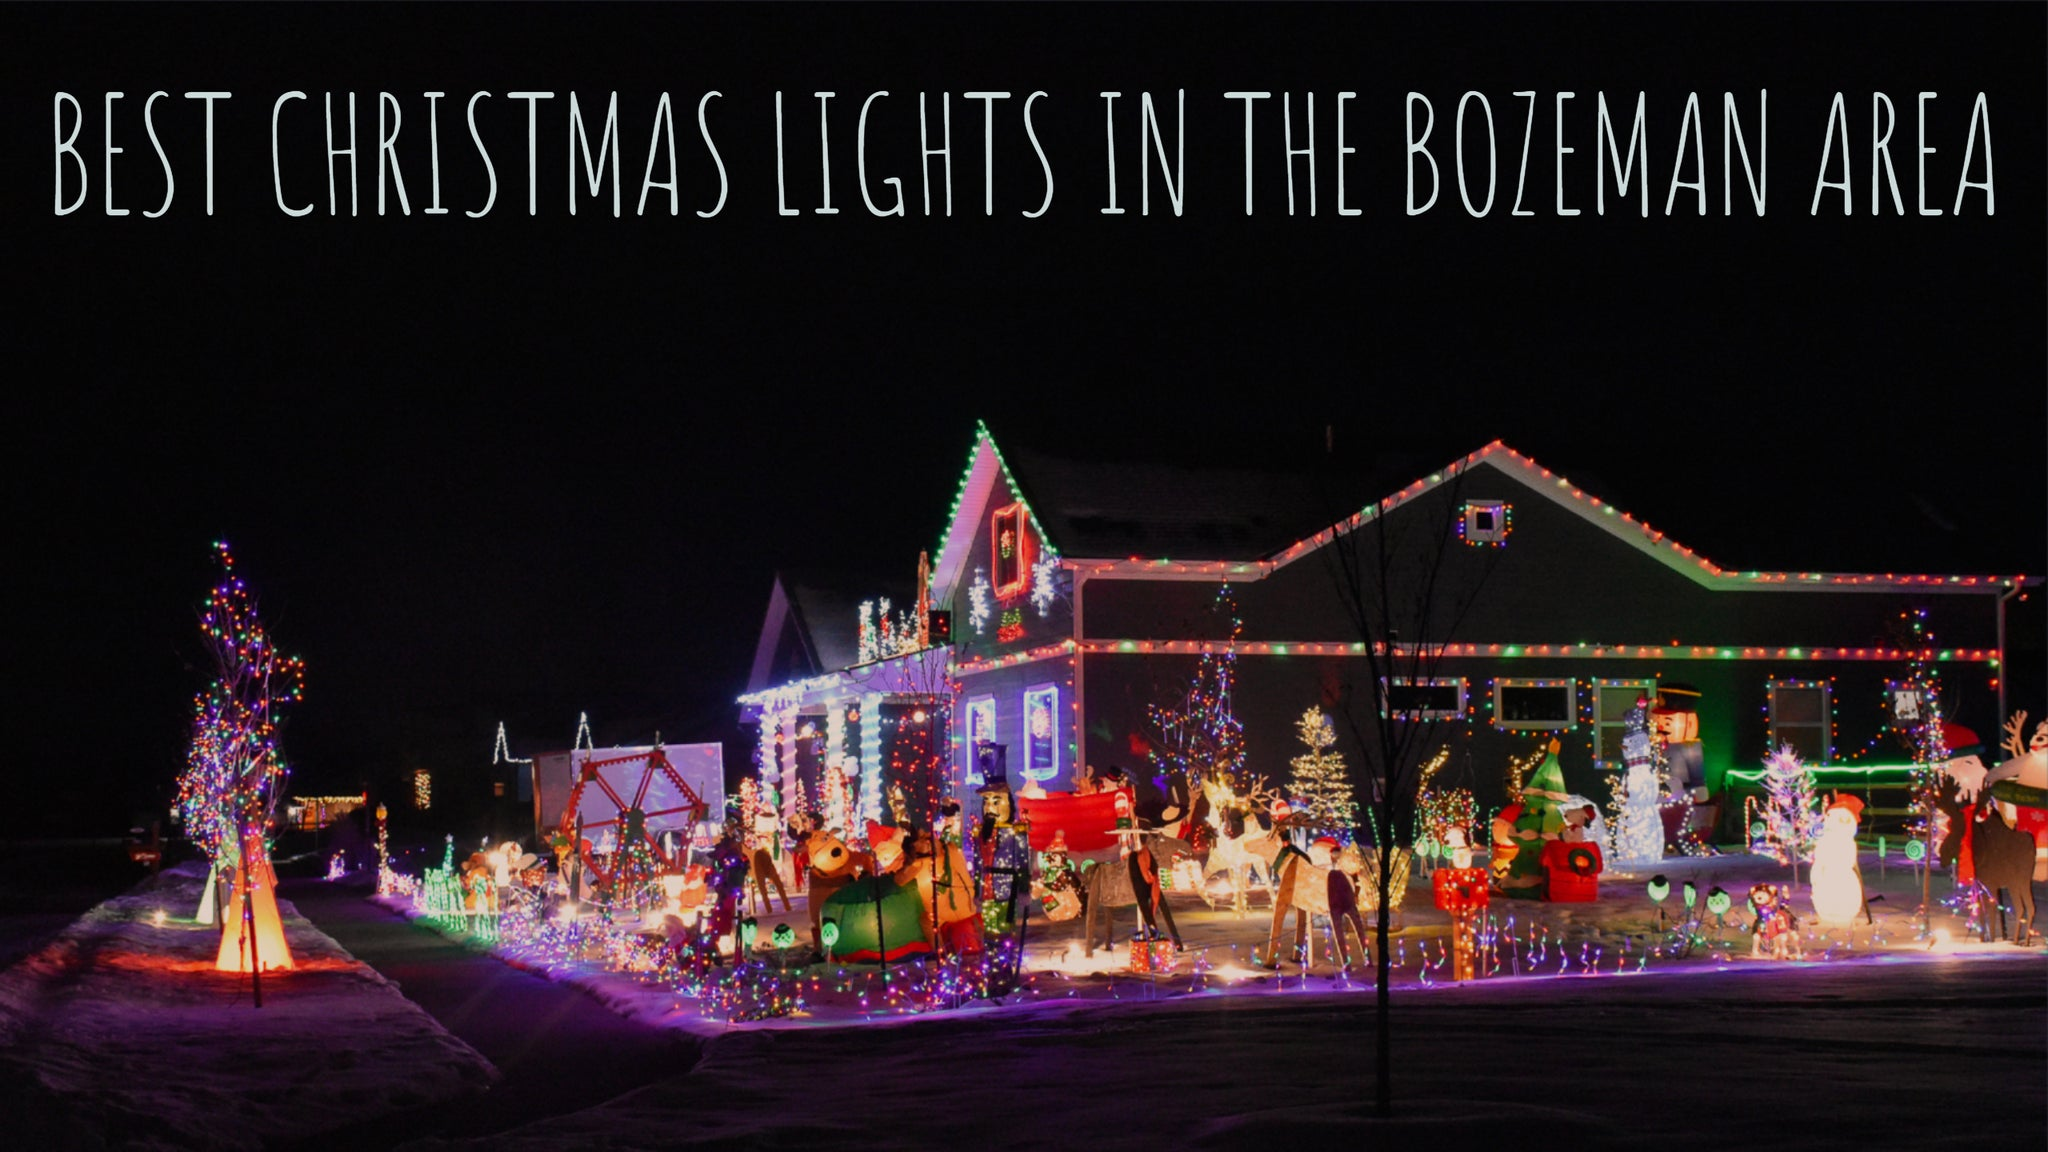 Best Christmas Lights in the Bozeman Area